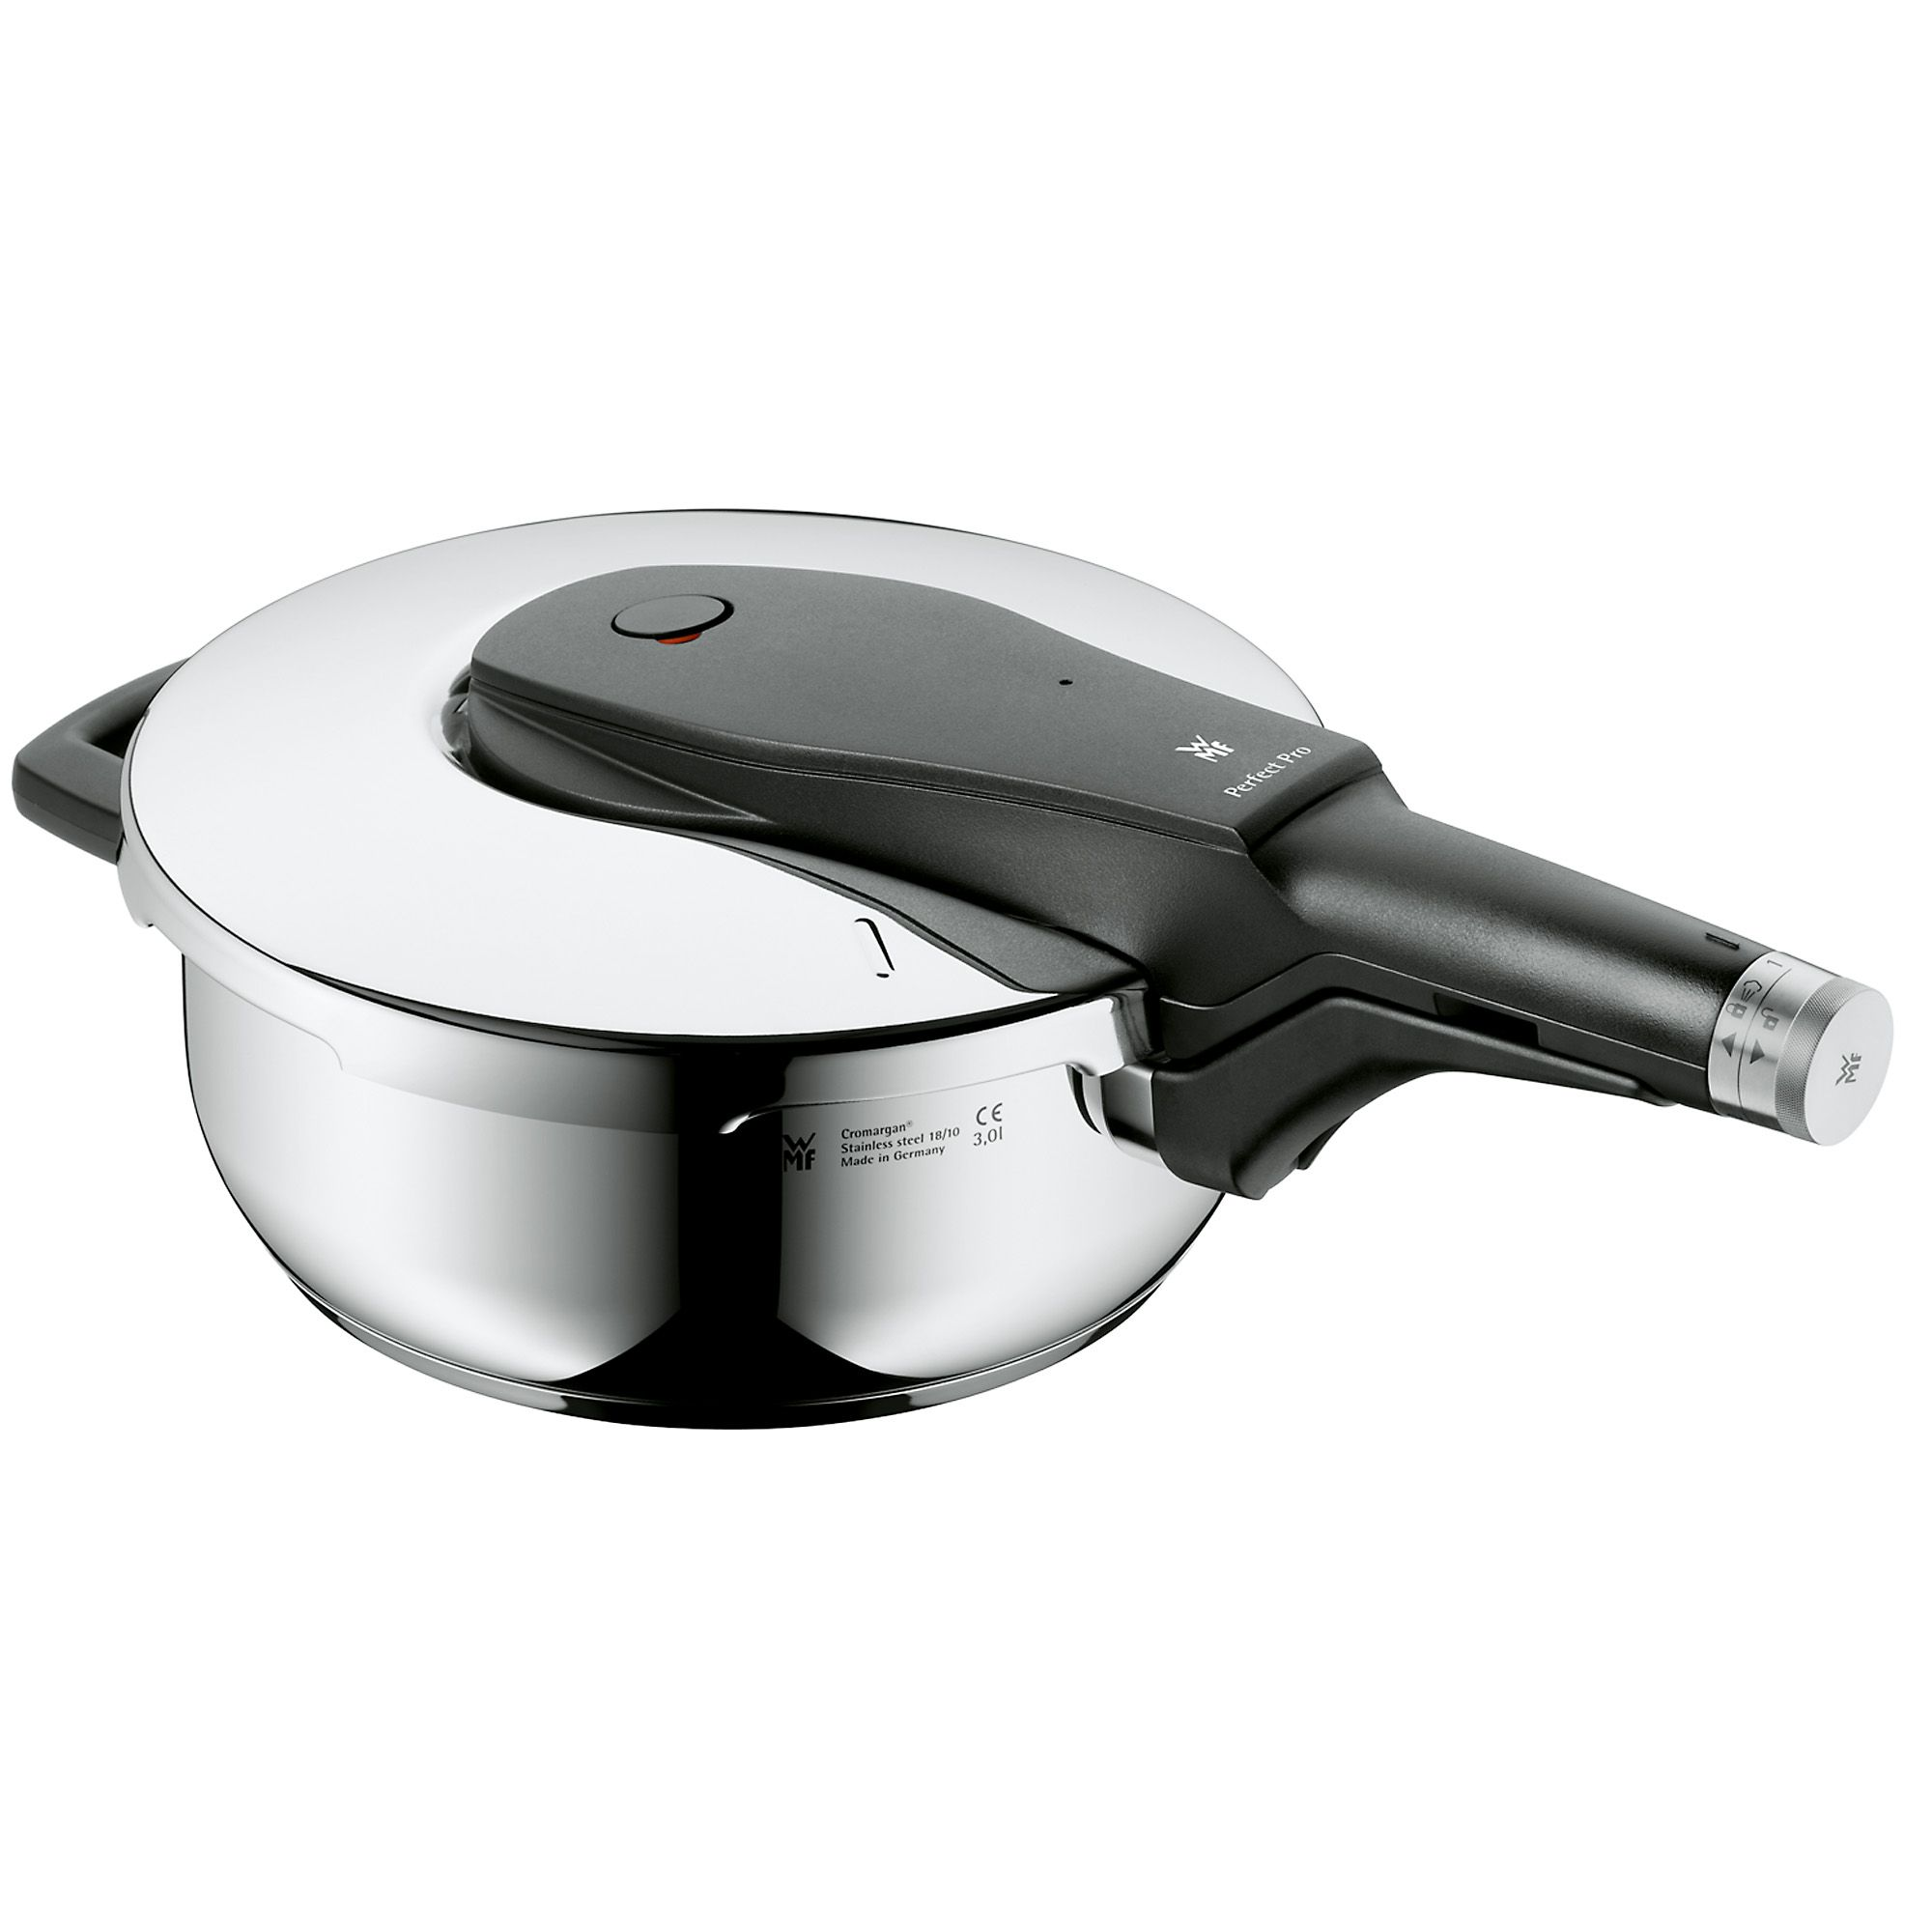 Perfect pro pressure cooker 3.0 l